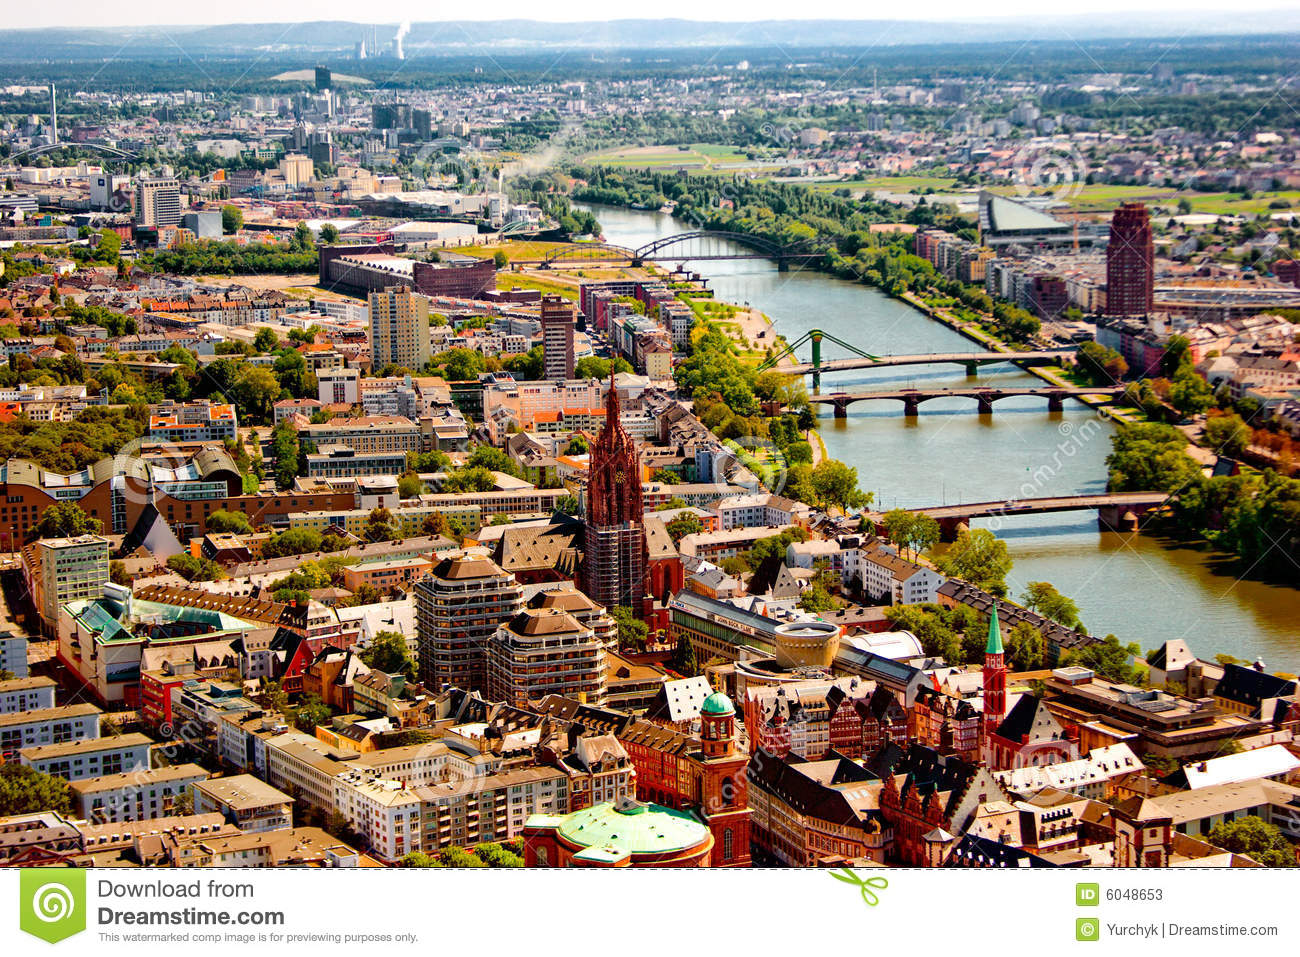 Frankfurt Am Mein Bird S Eye View Stock Photos   Image  6048653